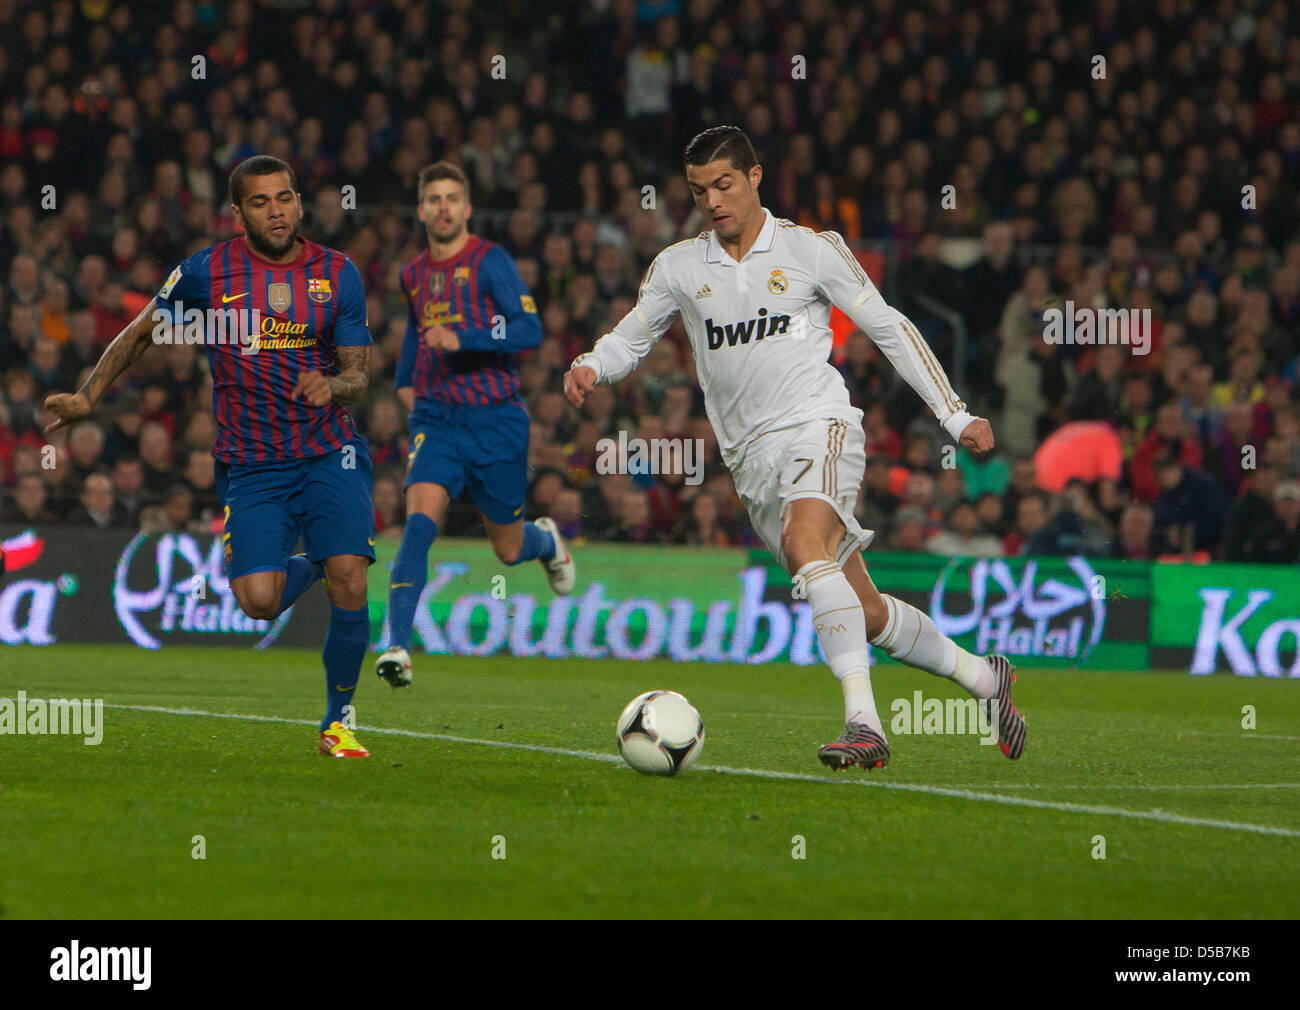 Barcelona, Spain, Cristiano Ronaldo, Real Madrid, on the ball in the Camp Nou stadium - Stock Image